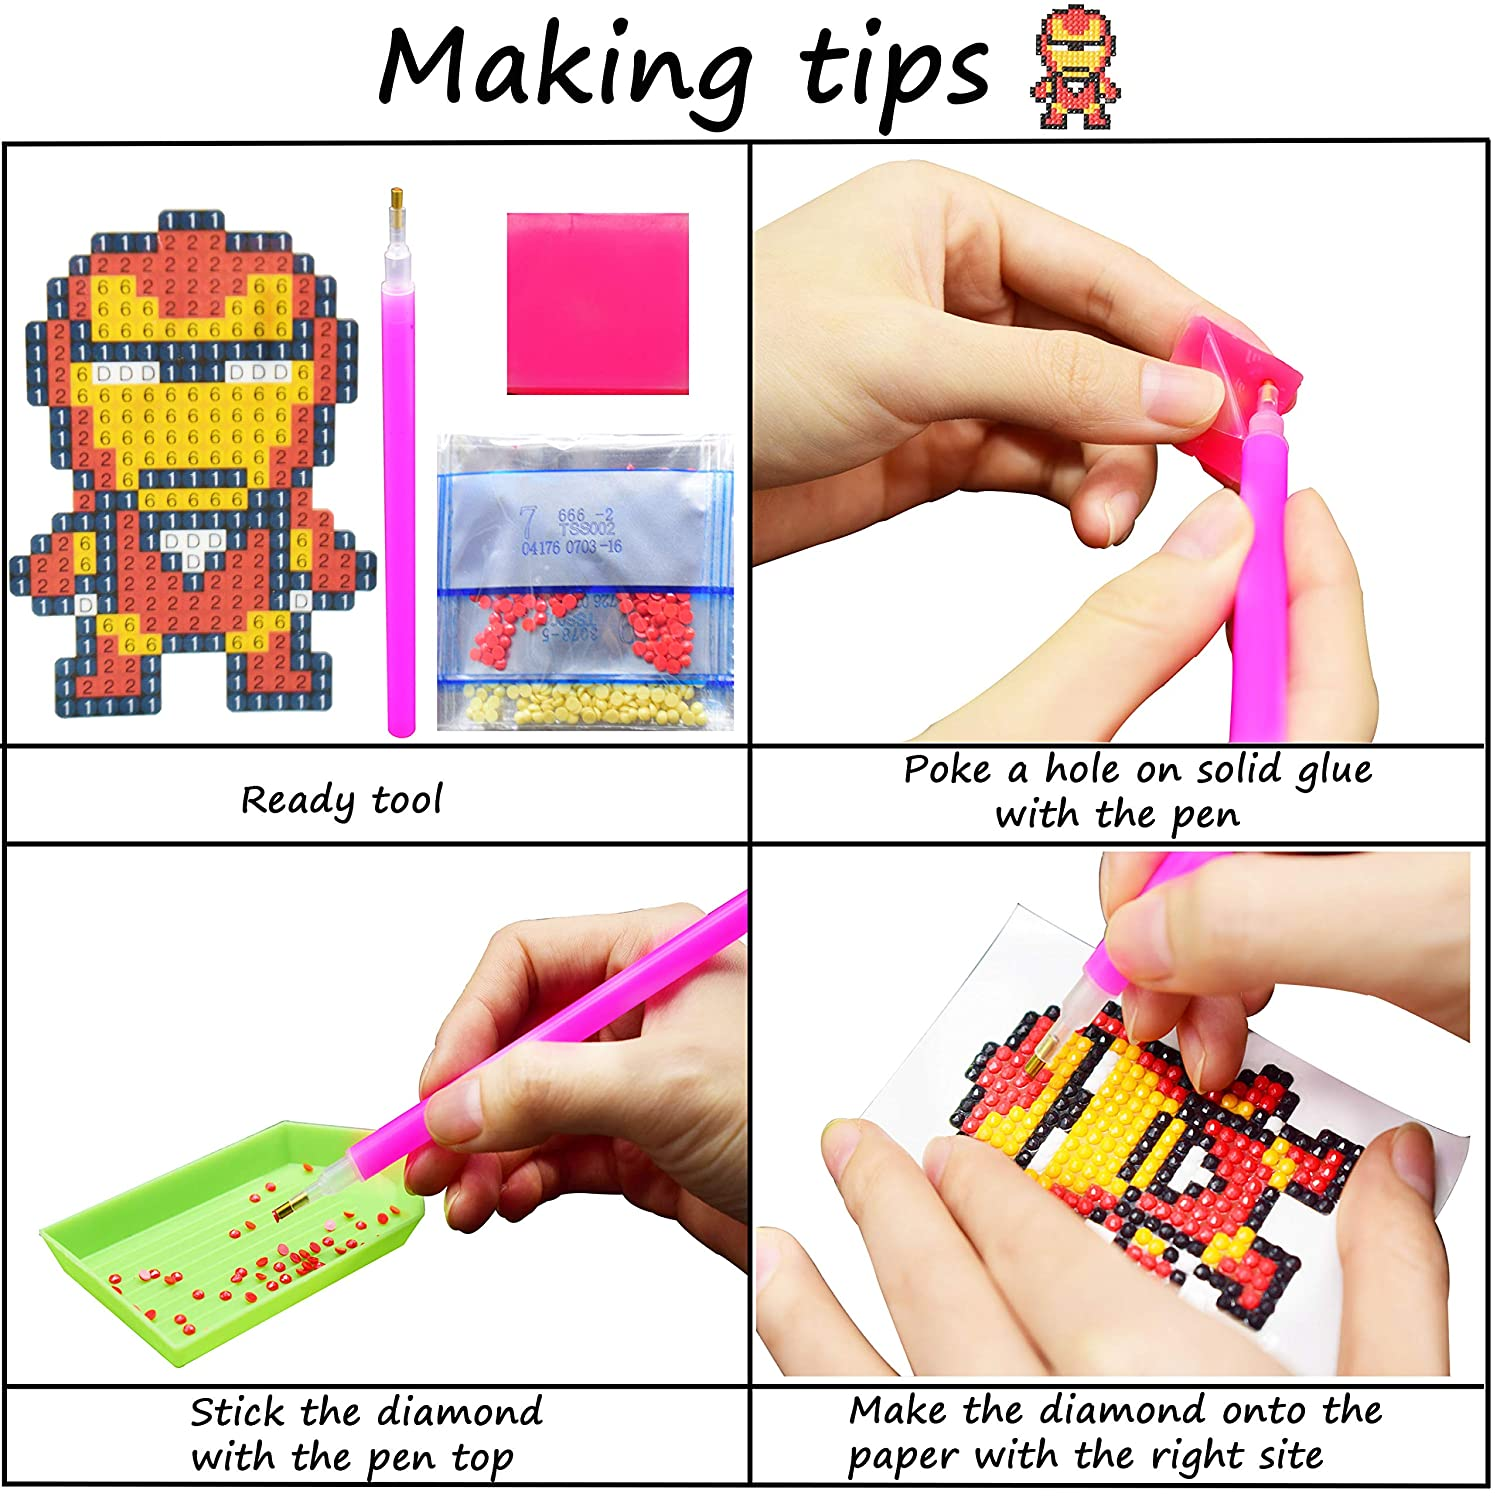 ZKSM Diamond Painting Kits for Kids DIY Paint by Numbers 5D Diamonds Stickers Arts and Crafts Dotz Kits for Kids 10 Packs, Princess